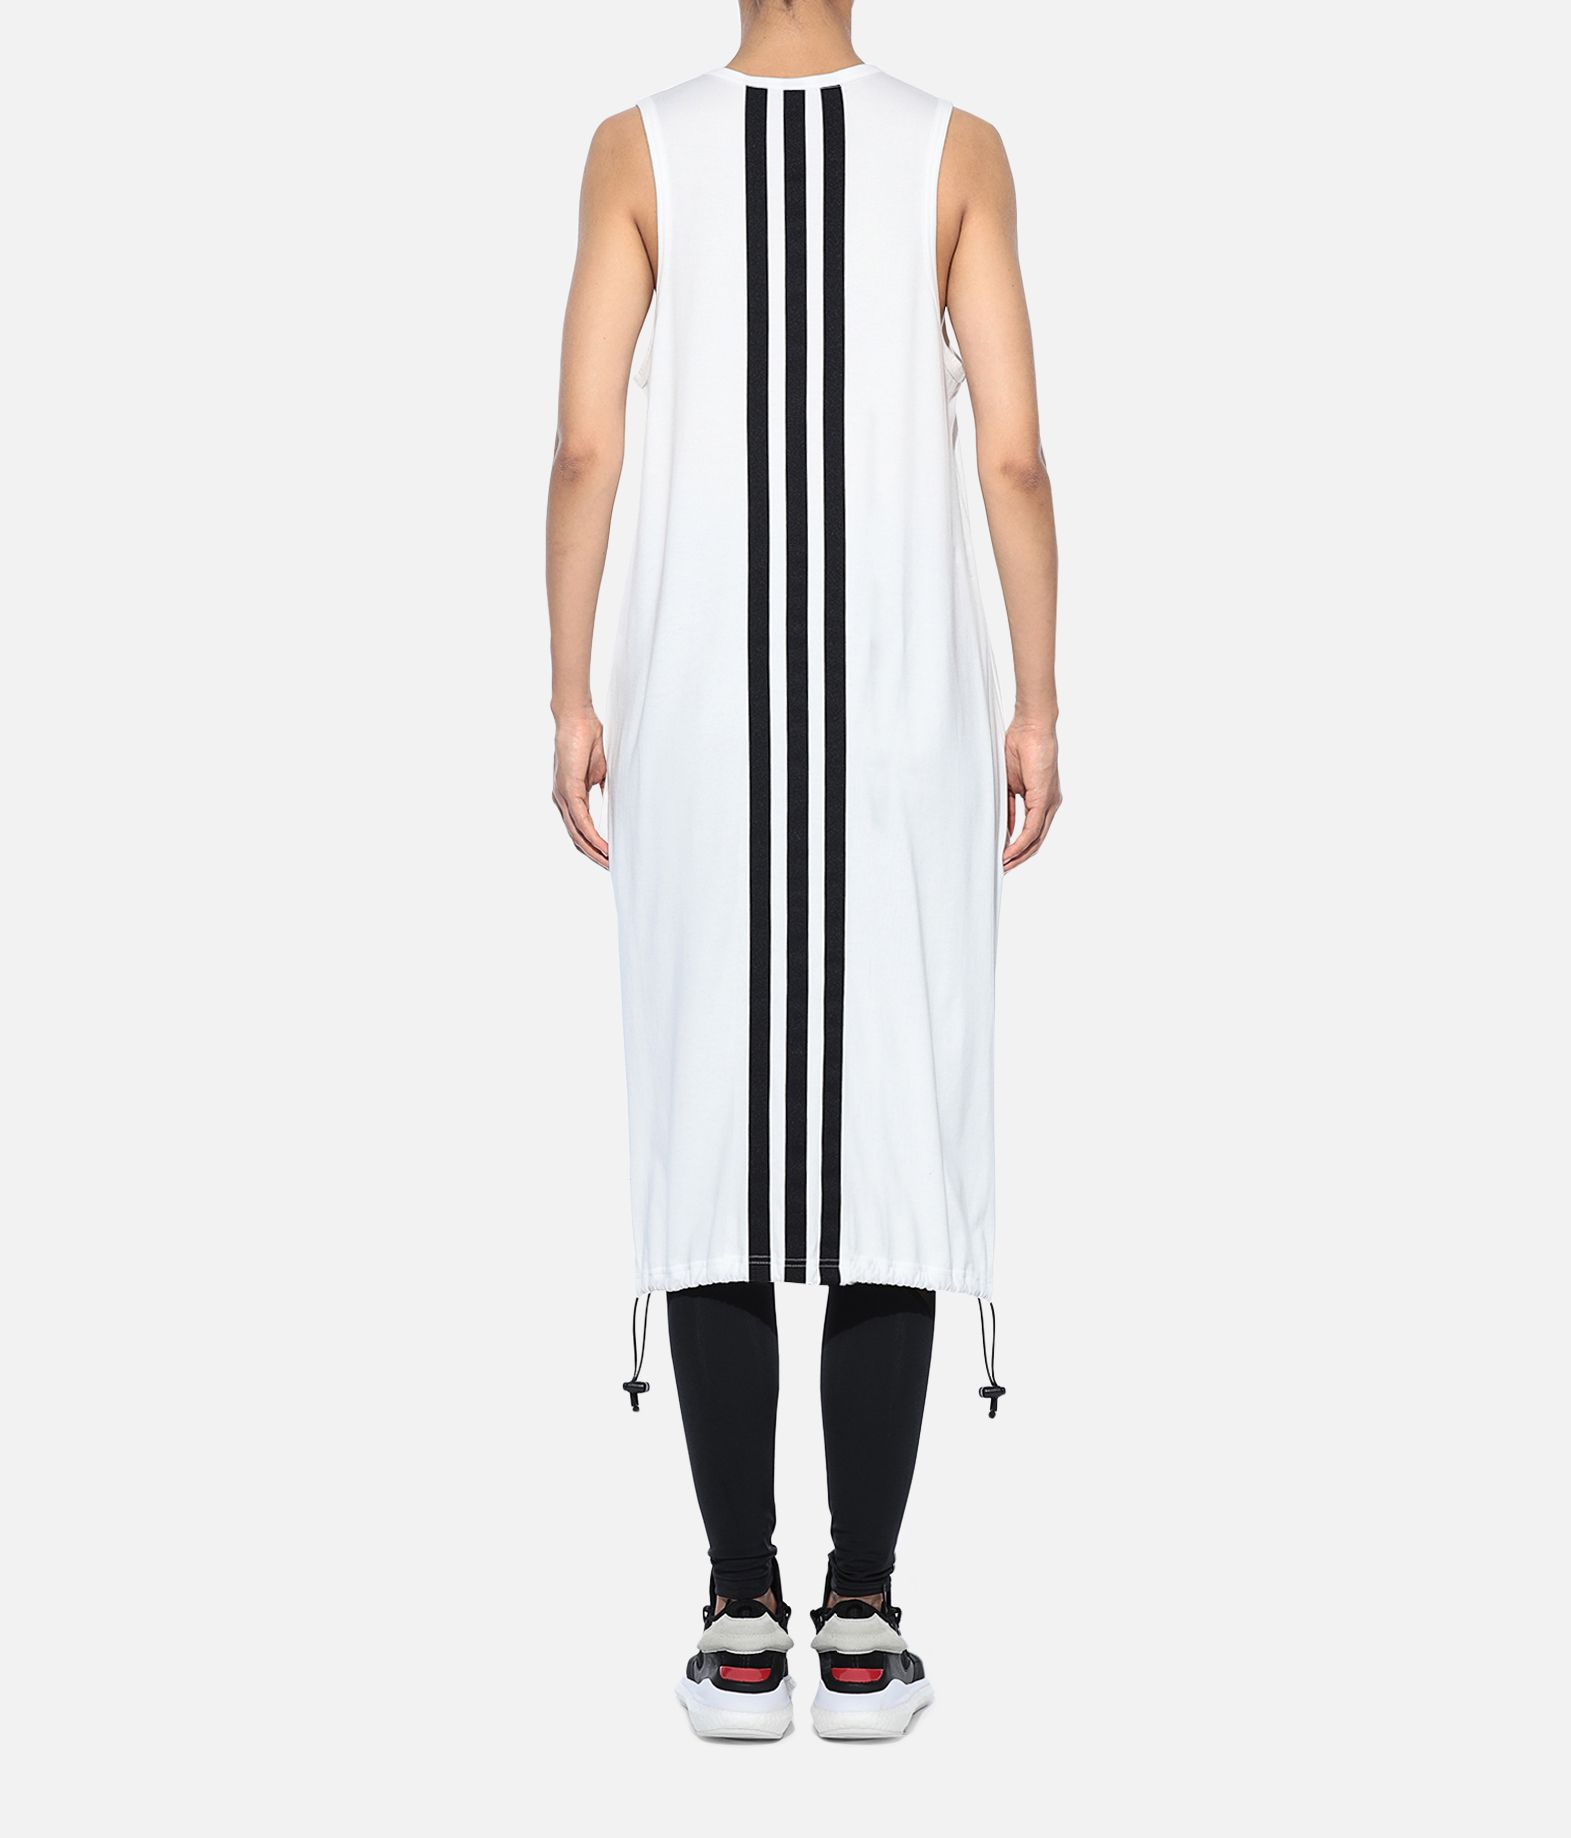 Y-3 Y-3 Drawstring Long Tank Top Sleeveless t-shirt Woman d